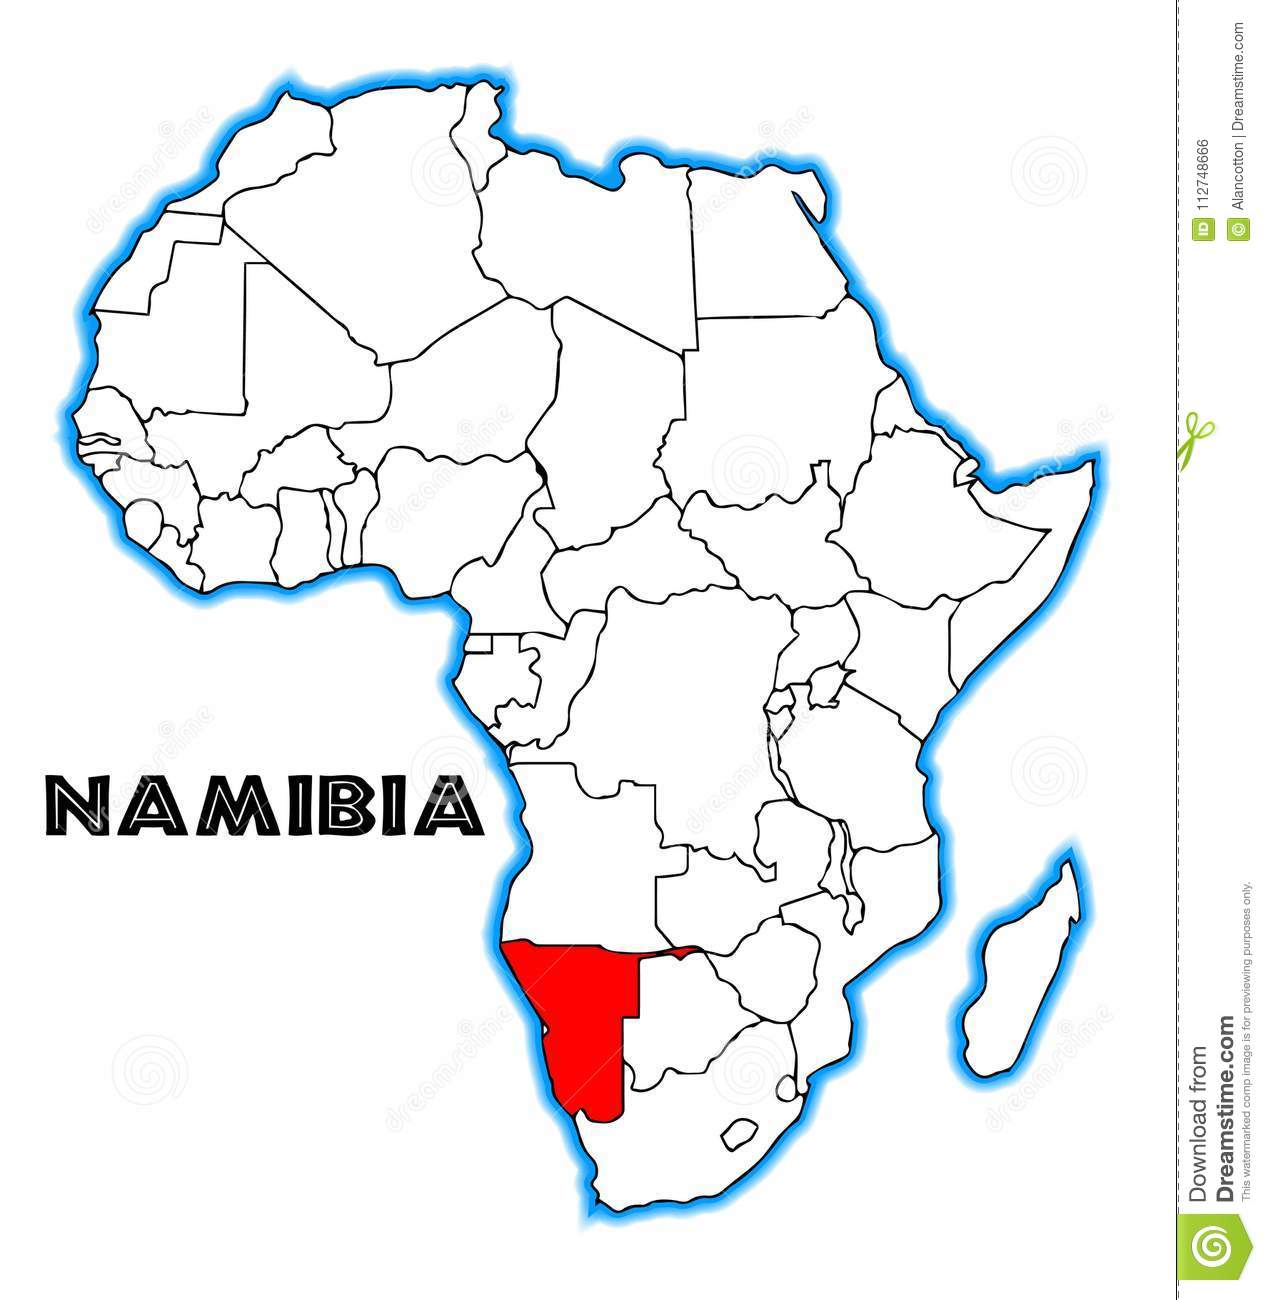 Namibia Africa Map stock vector. Illustration of african ...